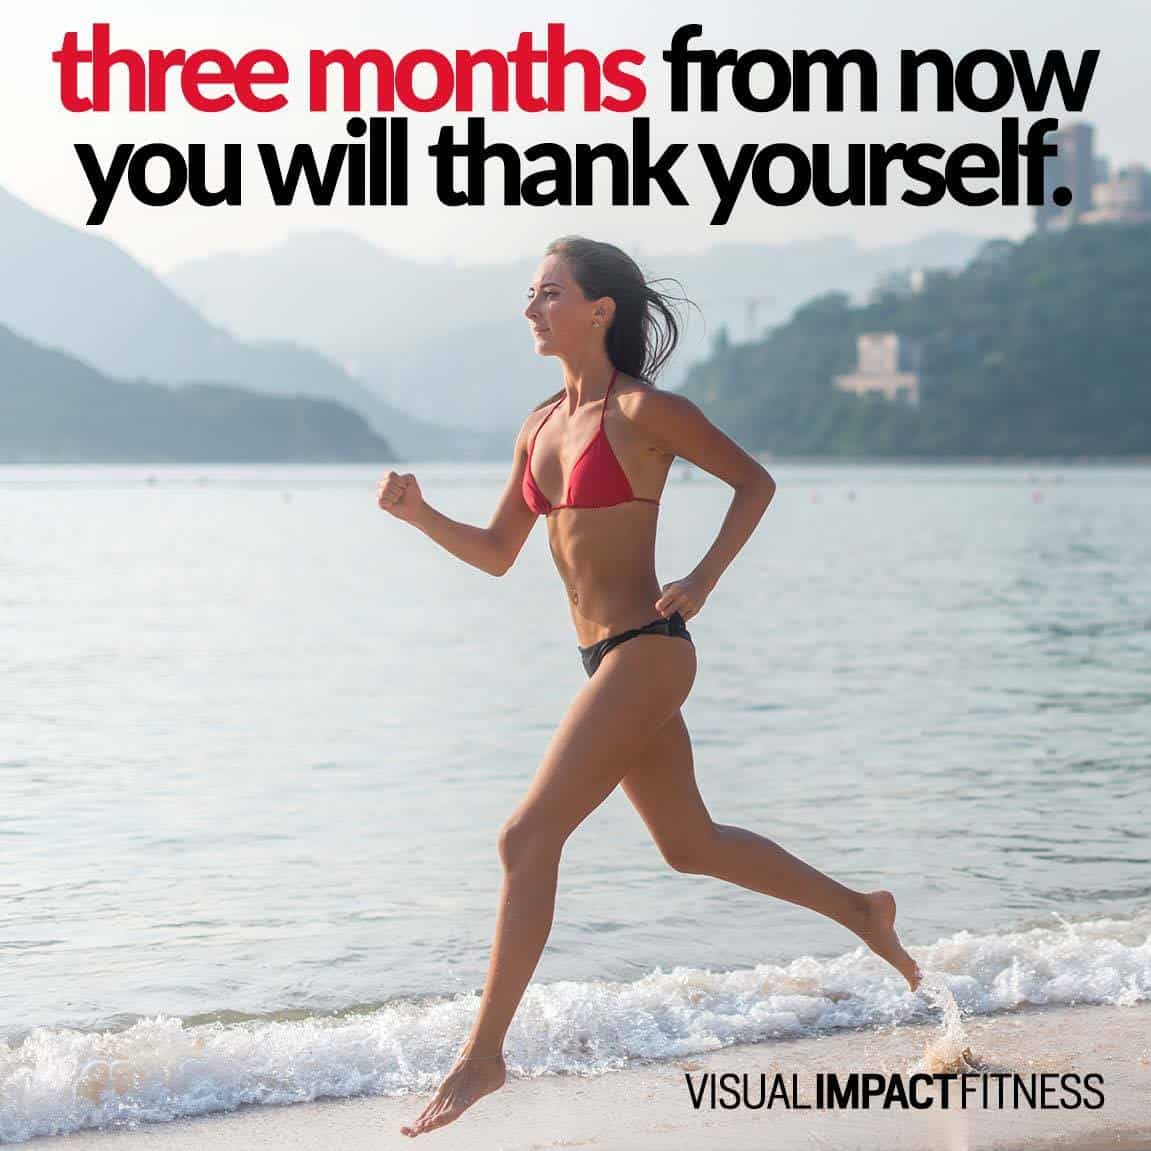 Three months from now you will thank yourself